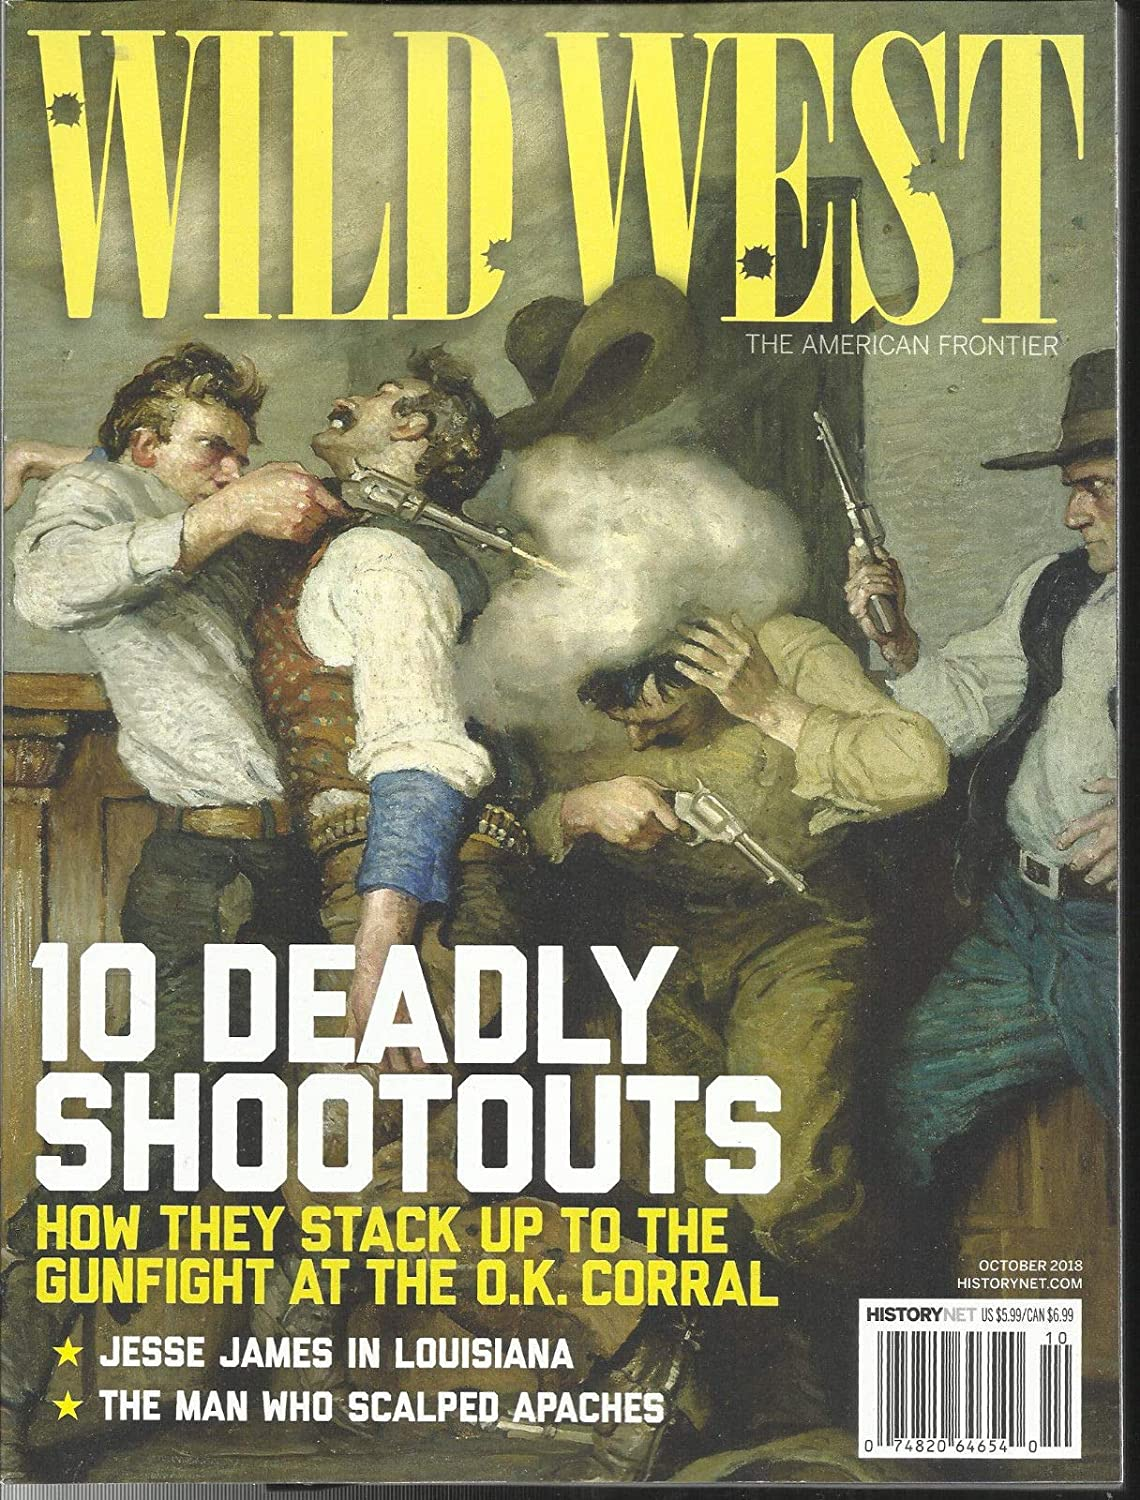 WILD WEST MAGAZINE, THE AMERICAN FRONTIER 10 DEADLY SHOOOUTS OCTOBER, 2018 s3457